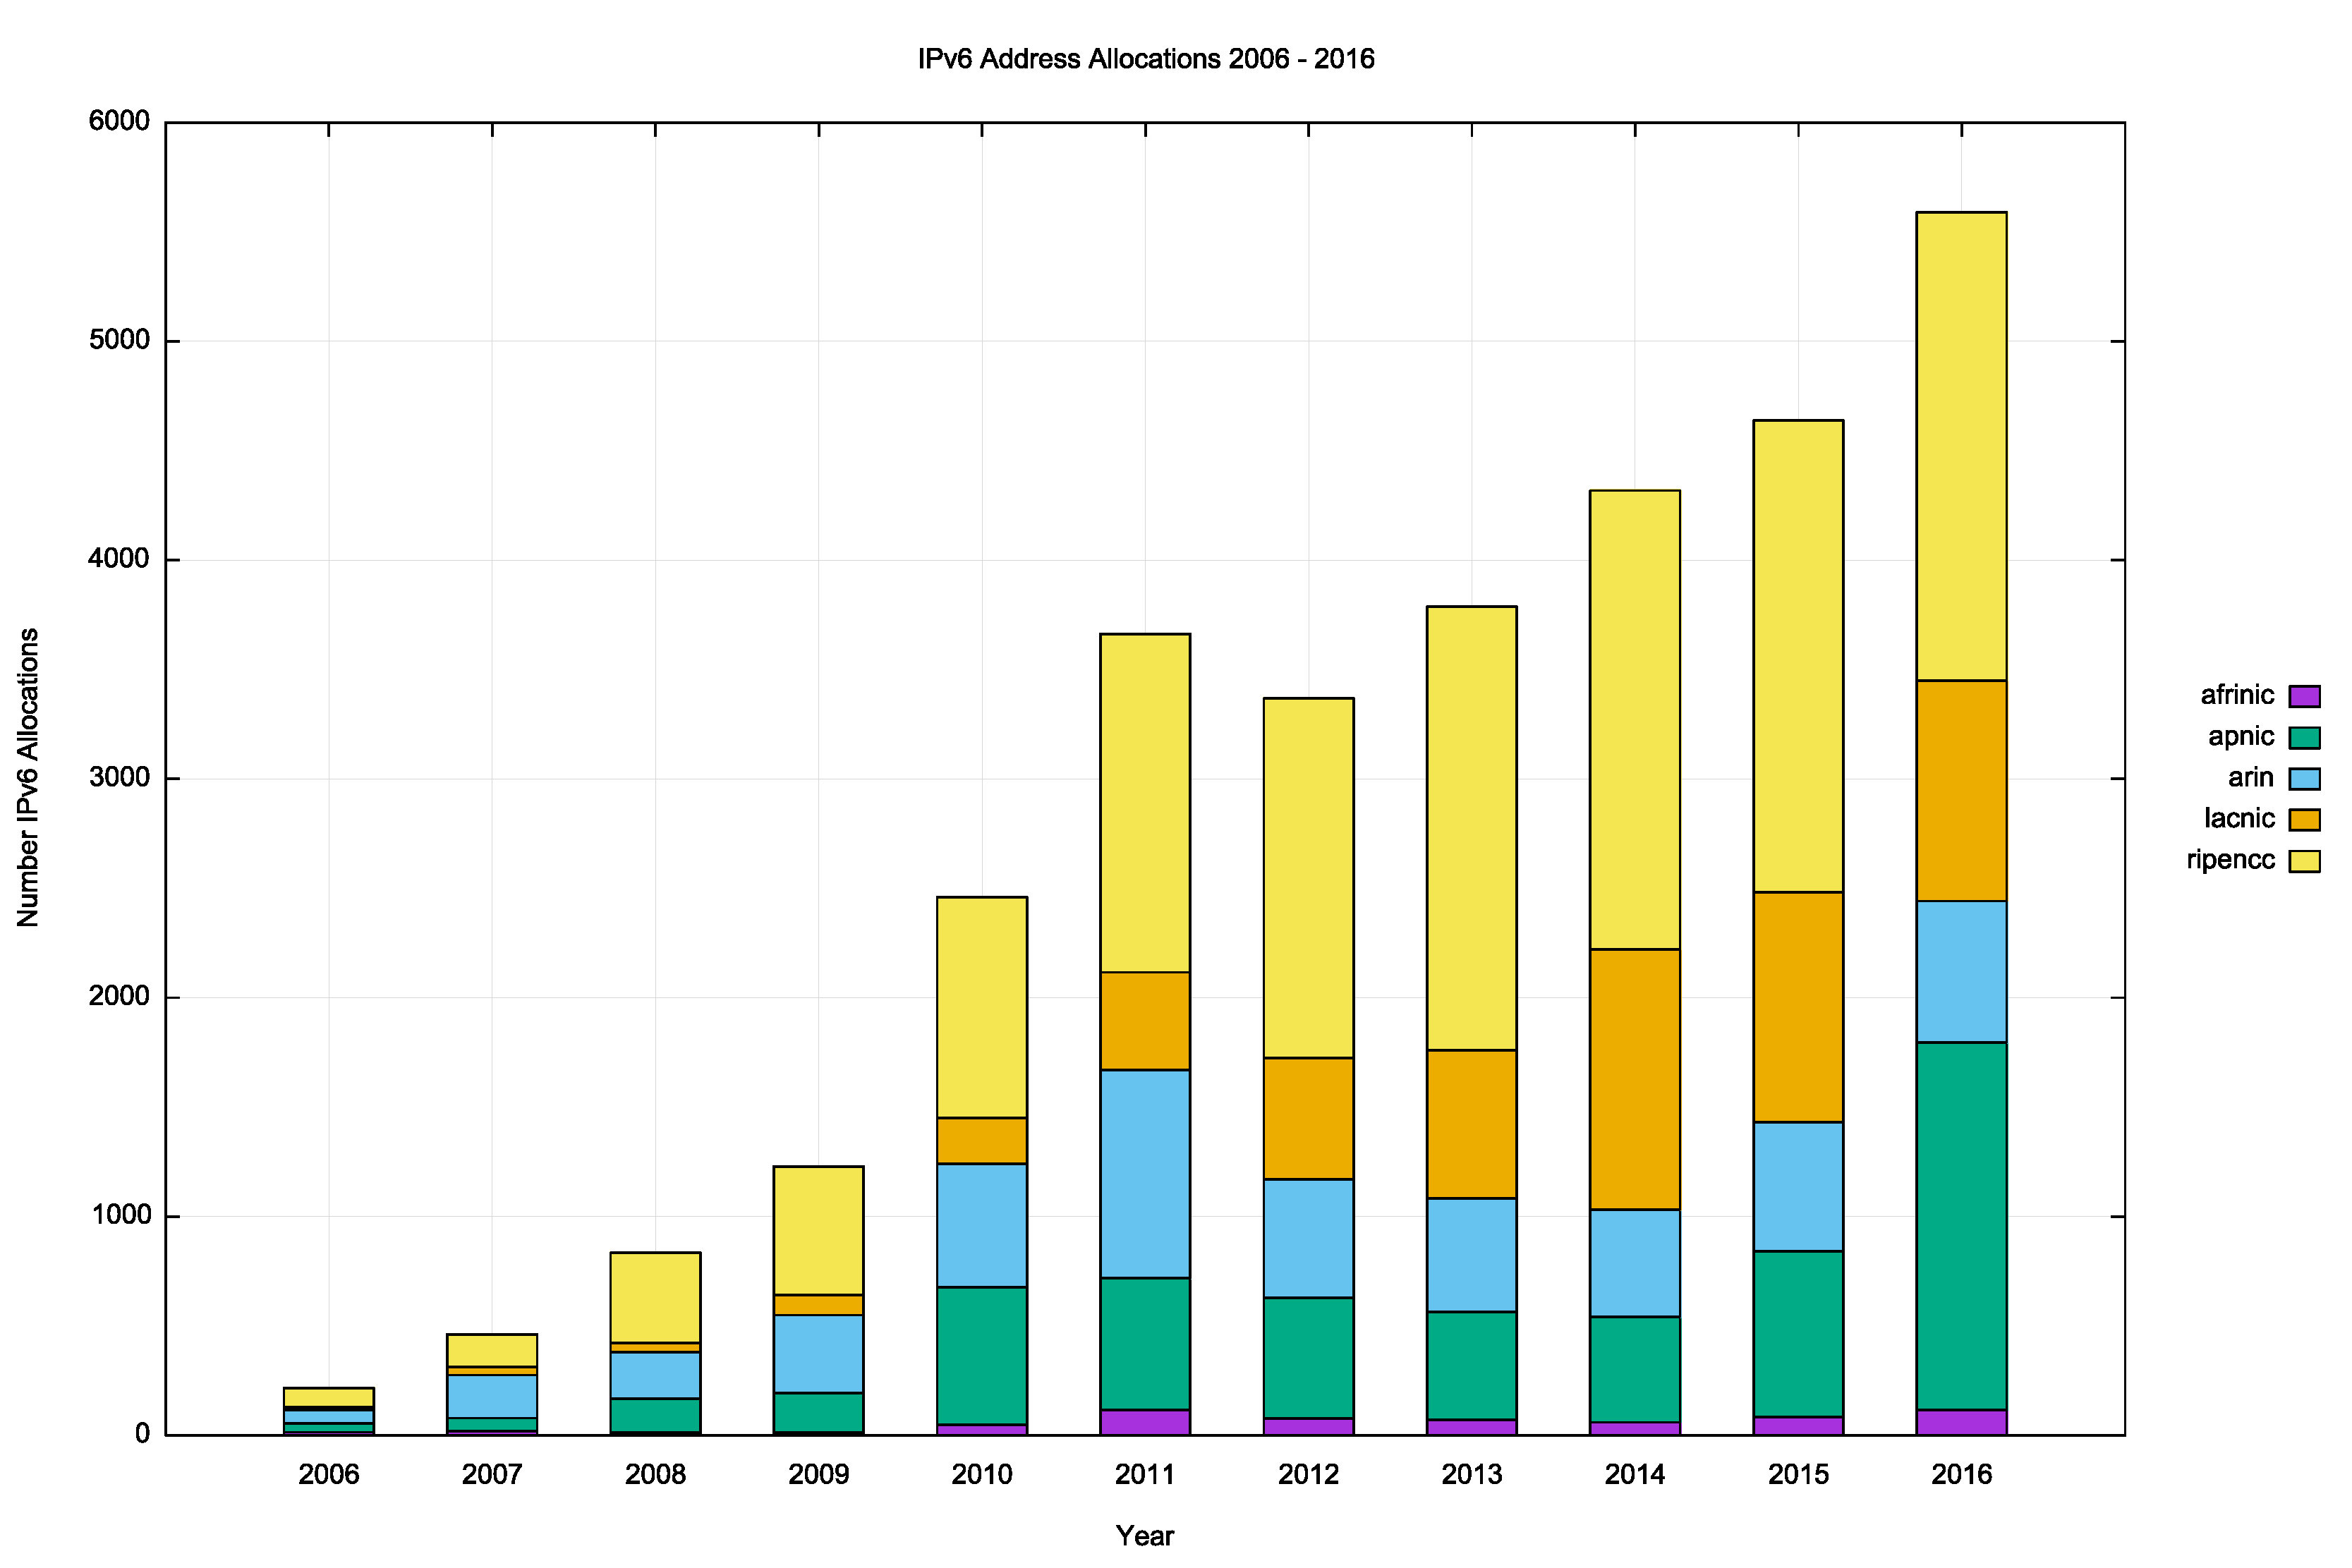 Figure 10 – Number of IPv6 Allocations per year